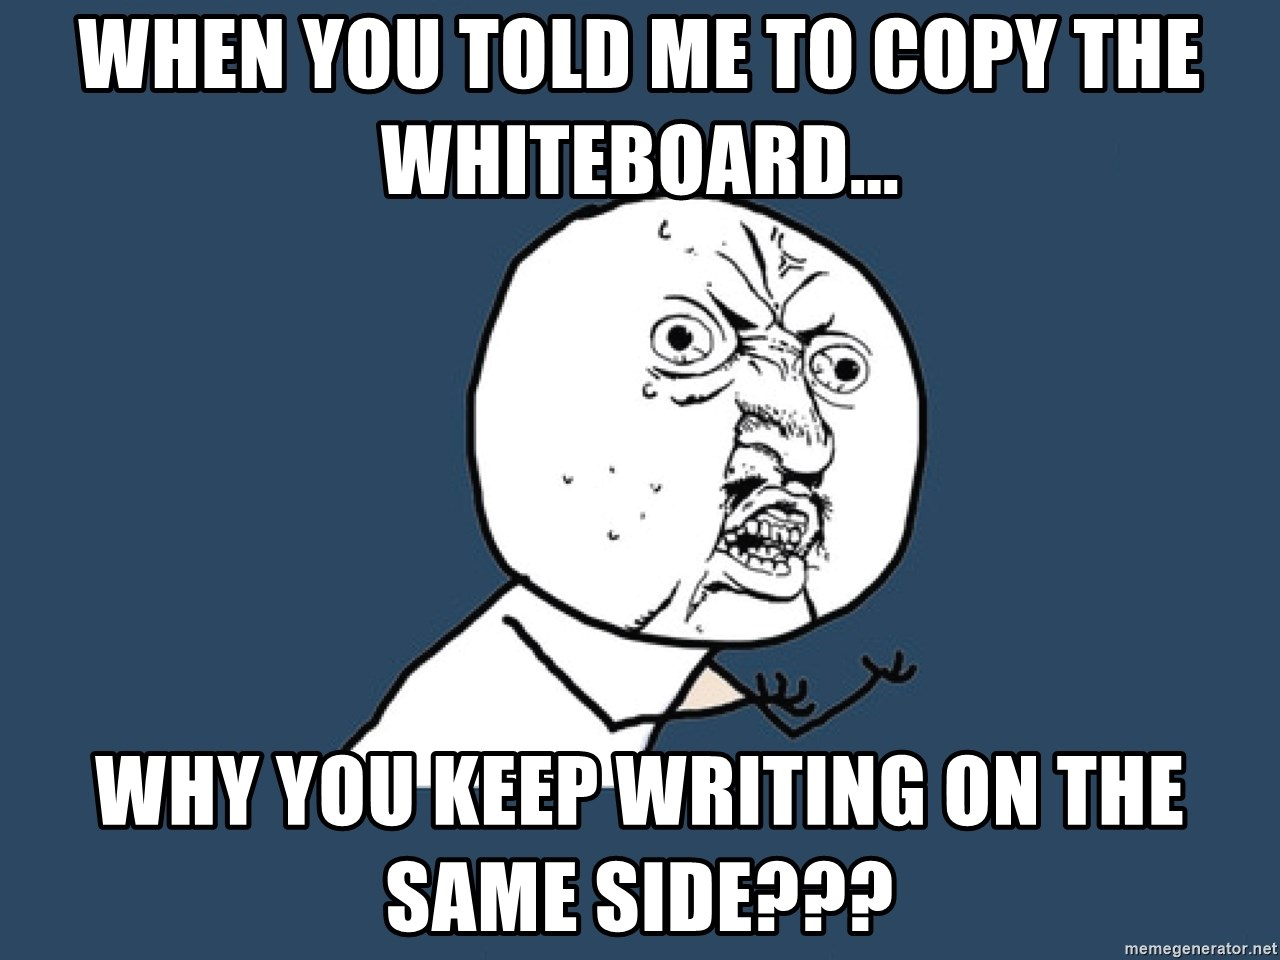 Y U No - WHEN YOU TOLD ME TO COPY THE WHITEBOARD... WHY YOU KEEP WRITING ON THE SAME SIDE???